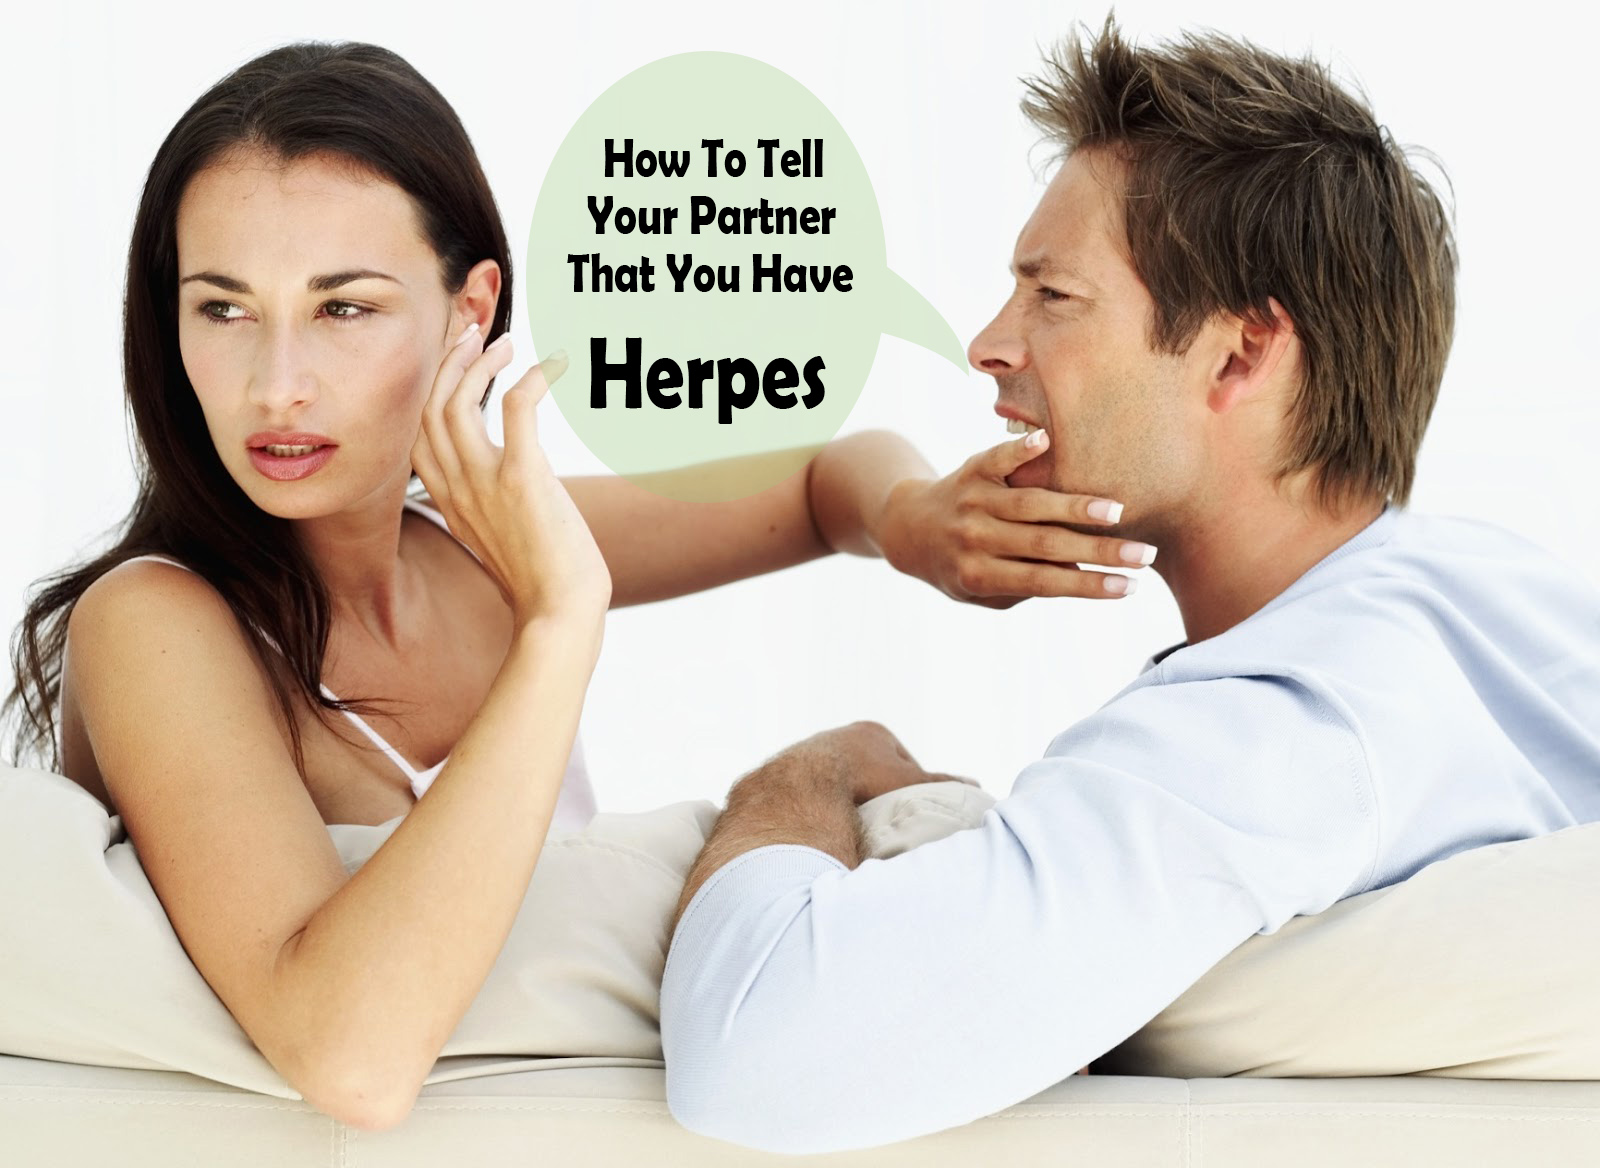 Do you tell your partner you have herpes